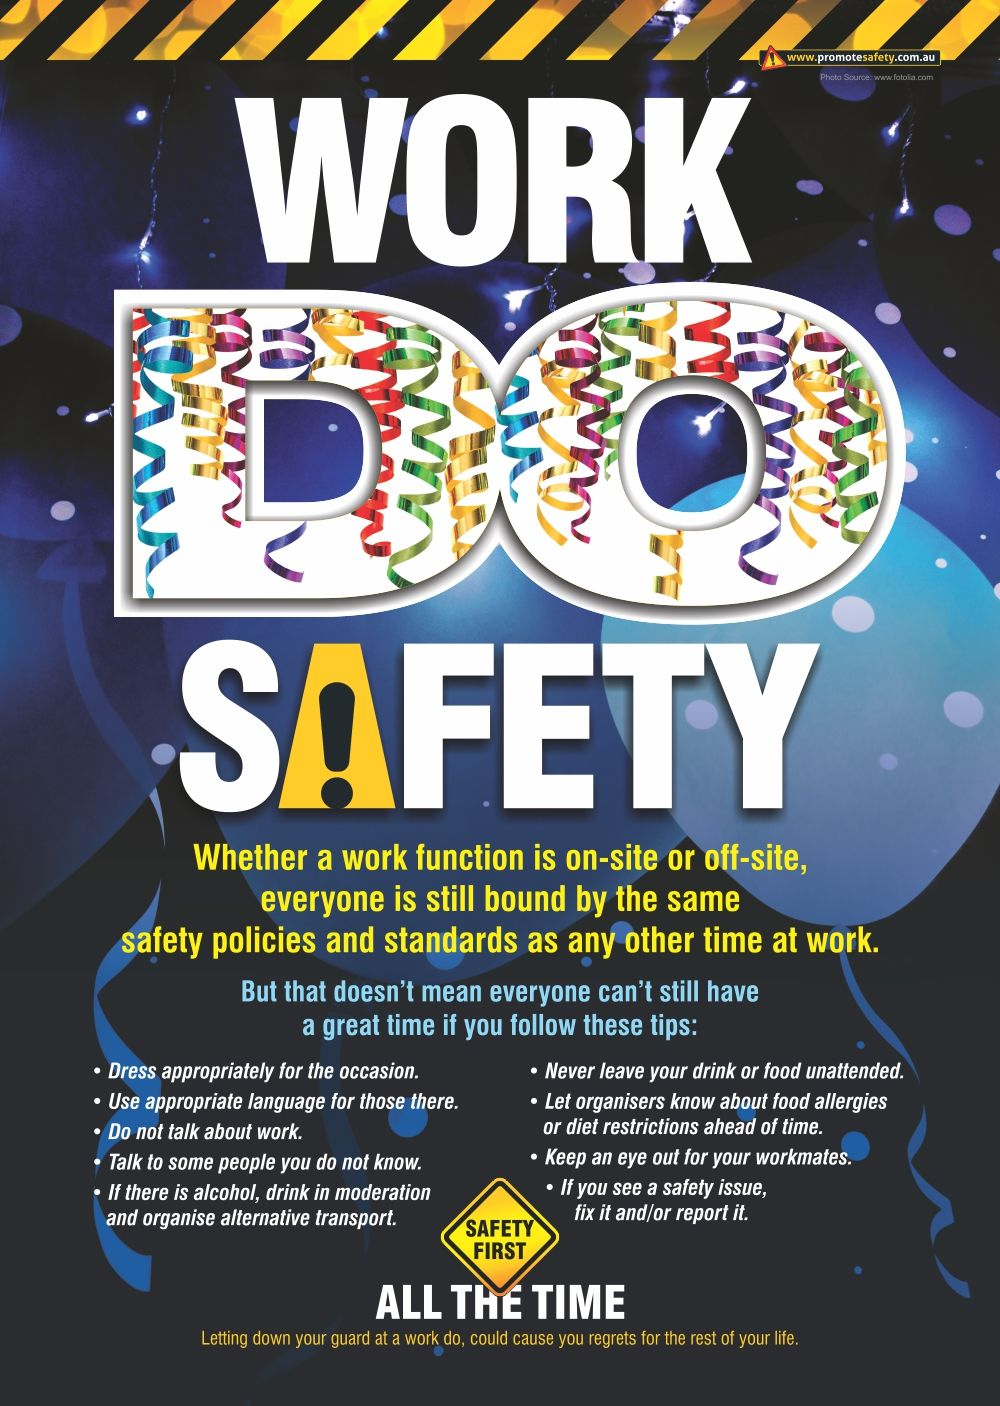 This Safety Poster from Promote Safety is a reminder to